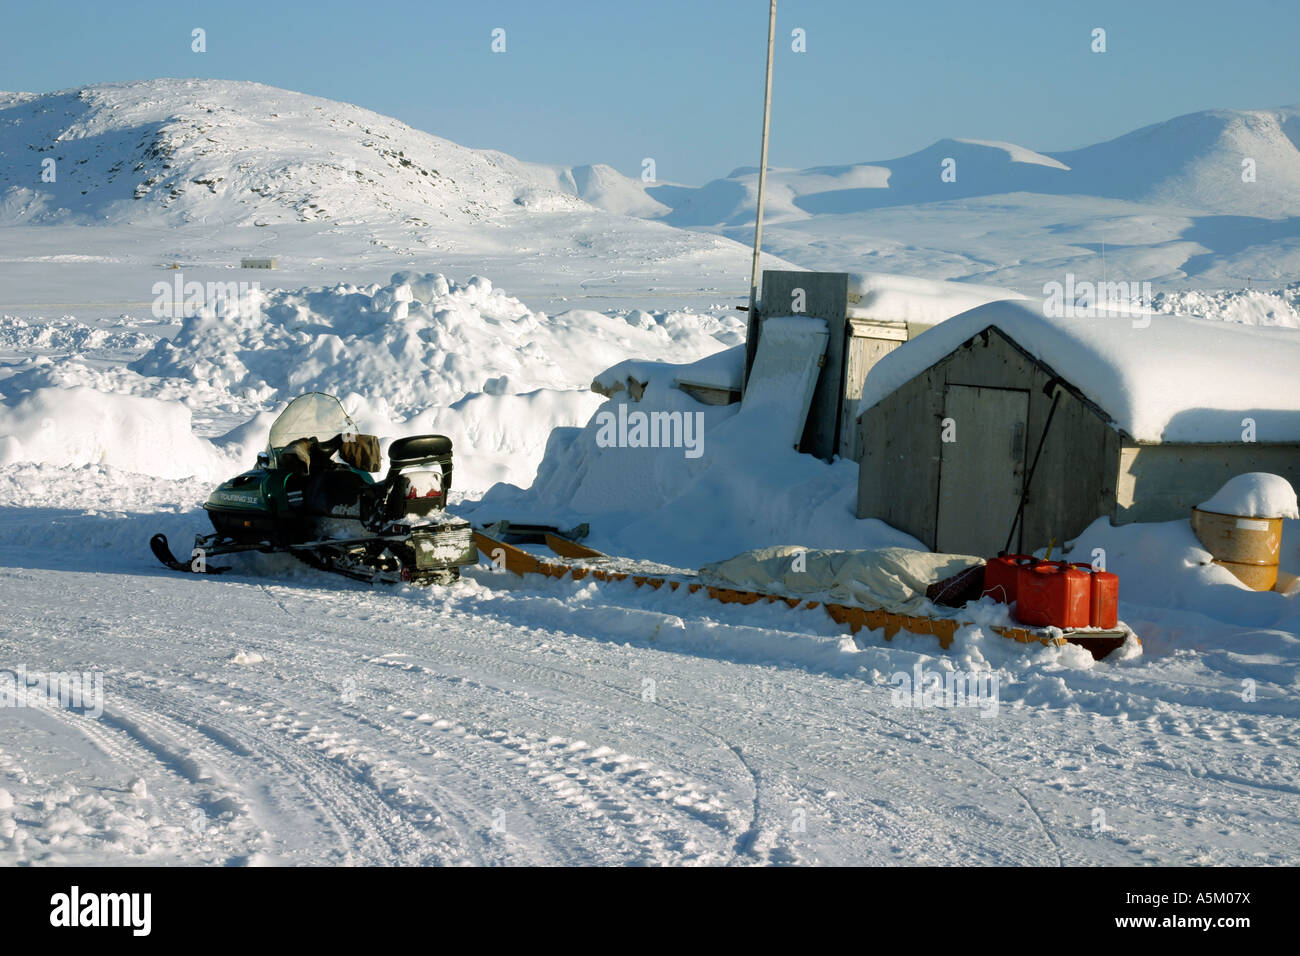 A snowmobile and sledge belonging to an Inuit hunter in Qikitarjuaq, Baffin Island, Canadian Arctic - Stock Image